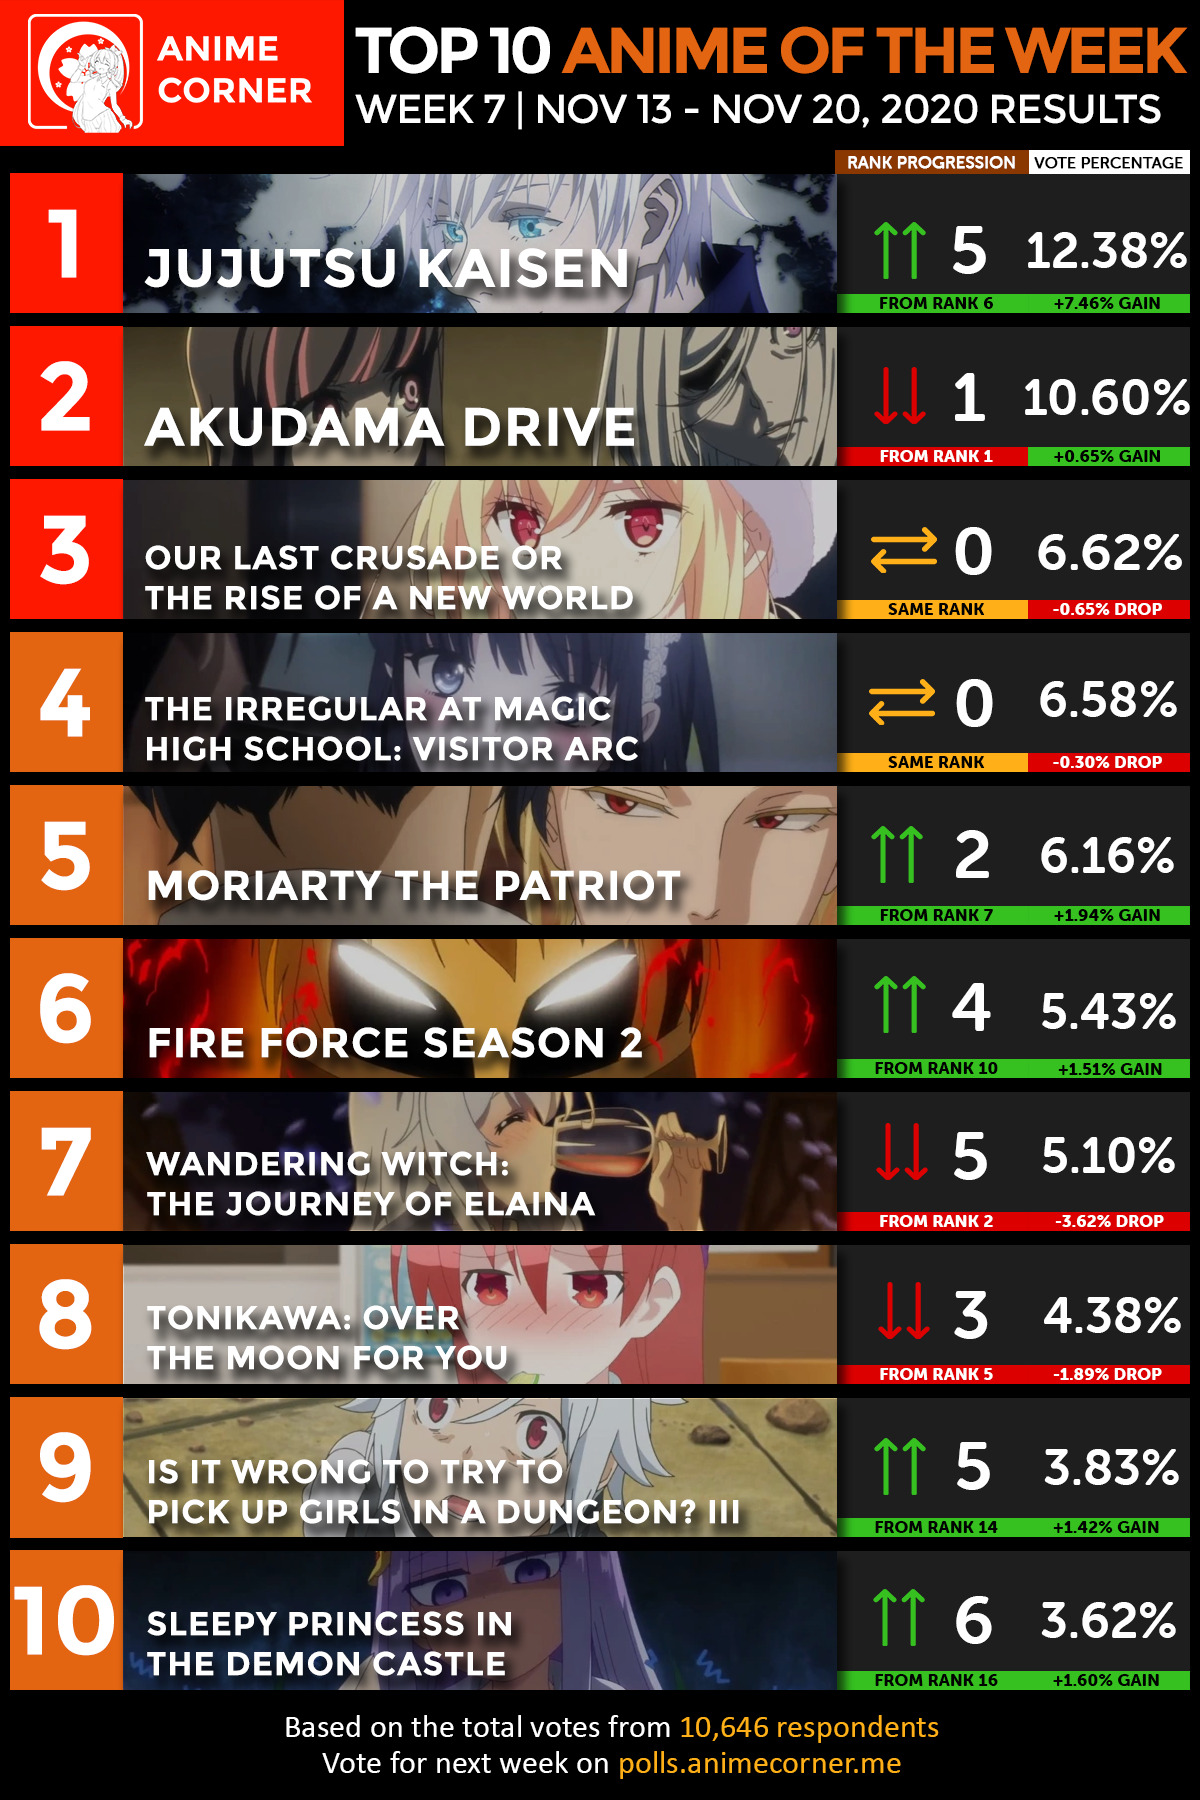 Top 10 Anime Fall 2020 Week 7